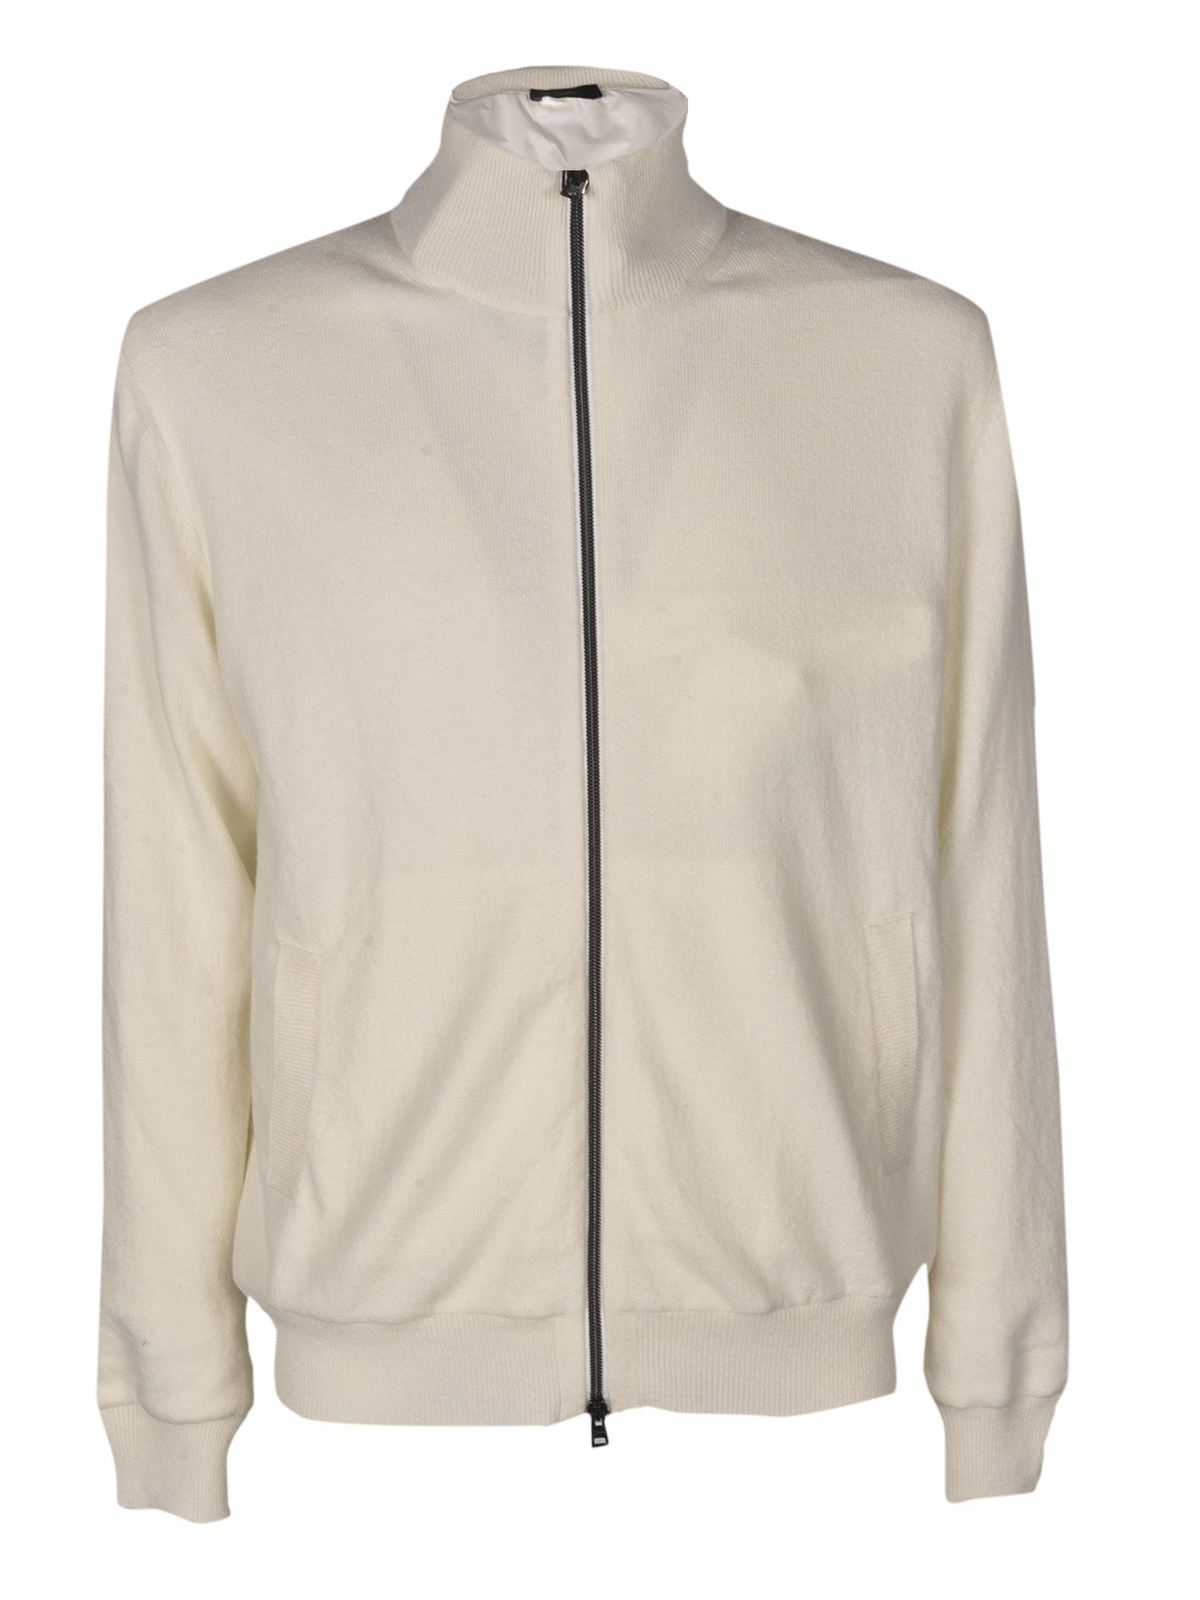 Herno ZIPPED JACKET IN CREAM COLOR